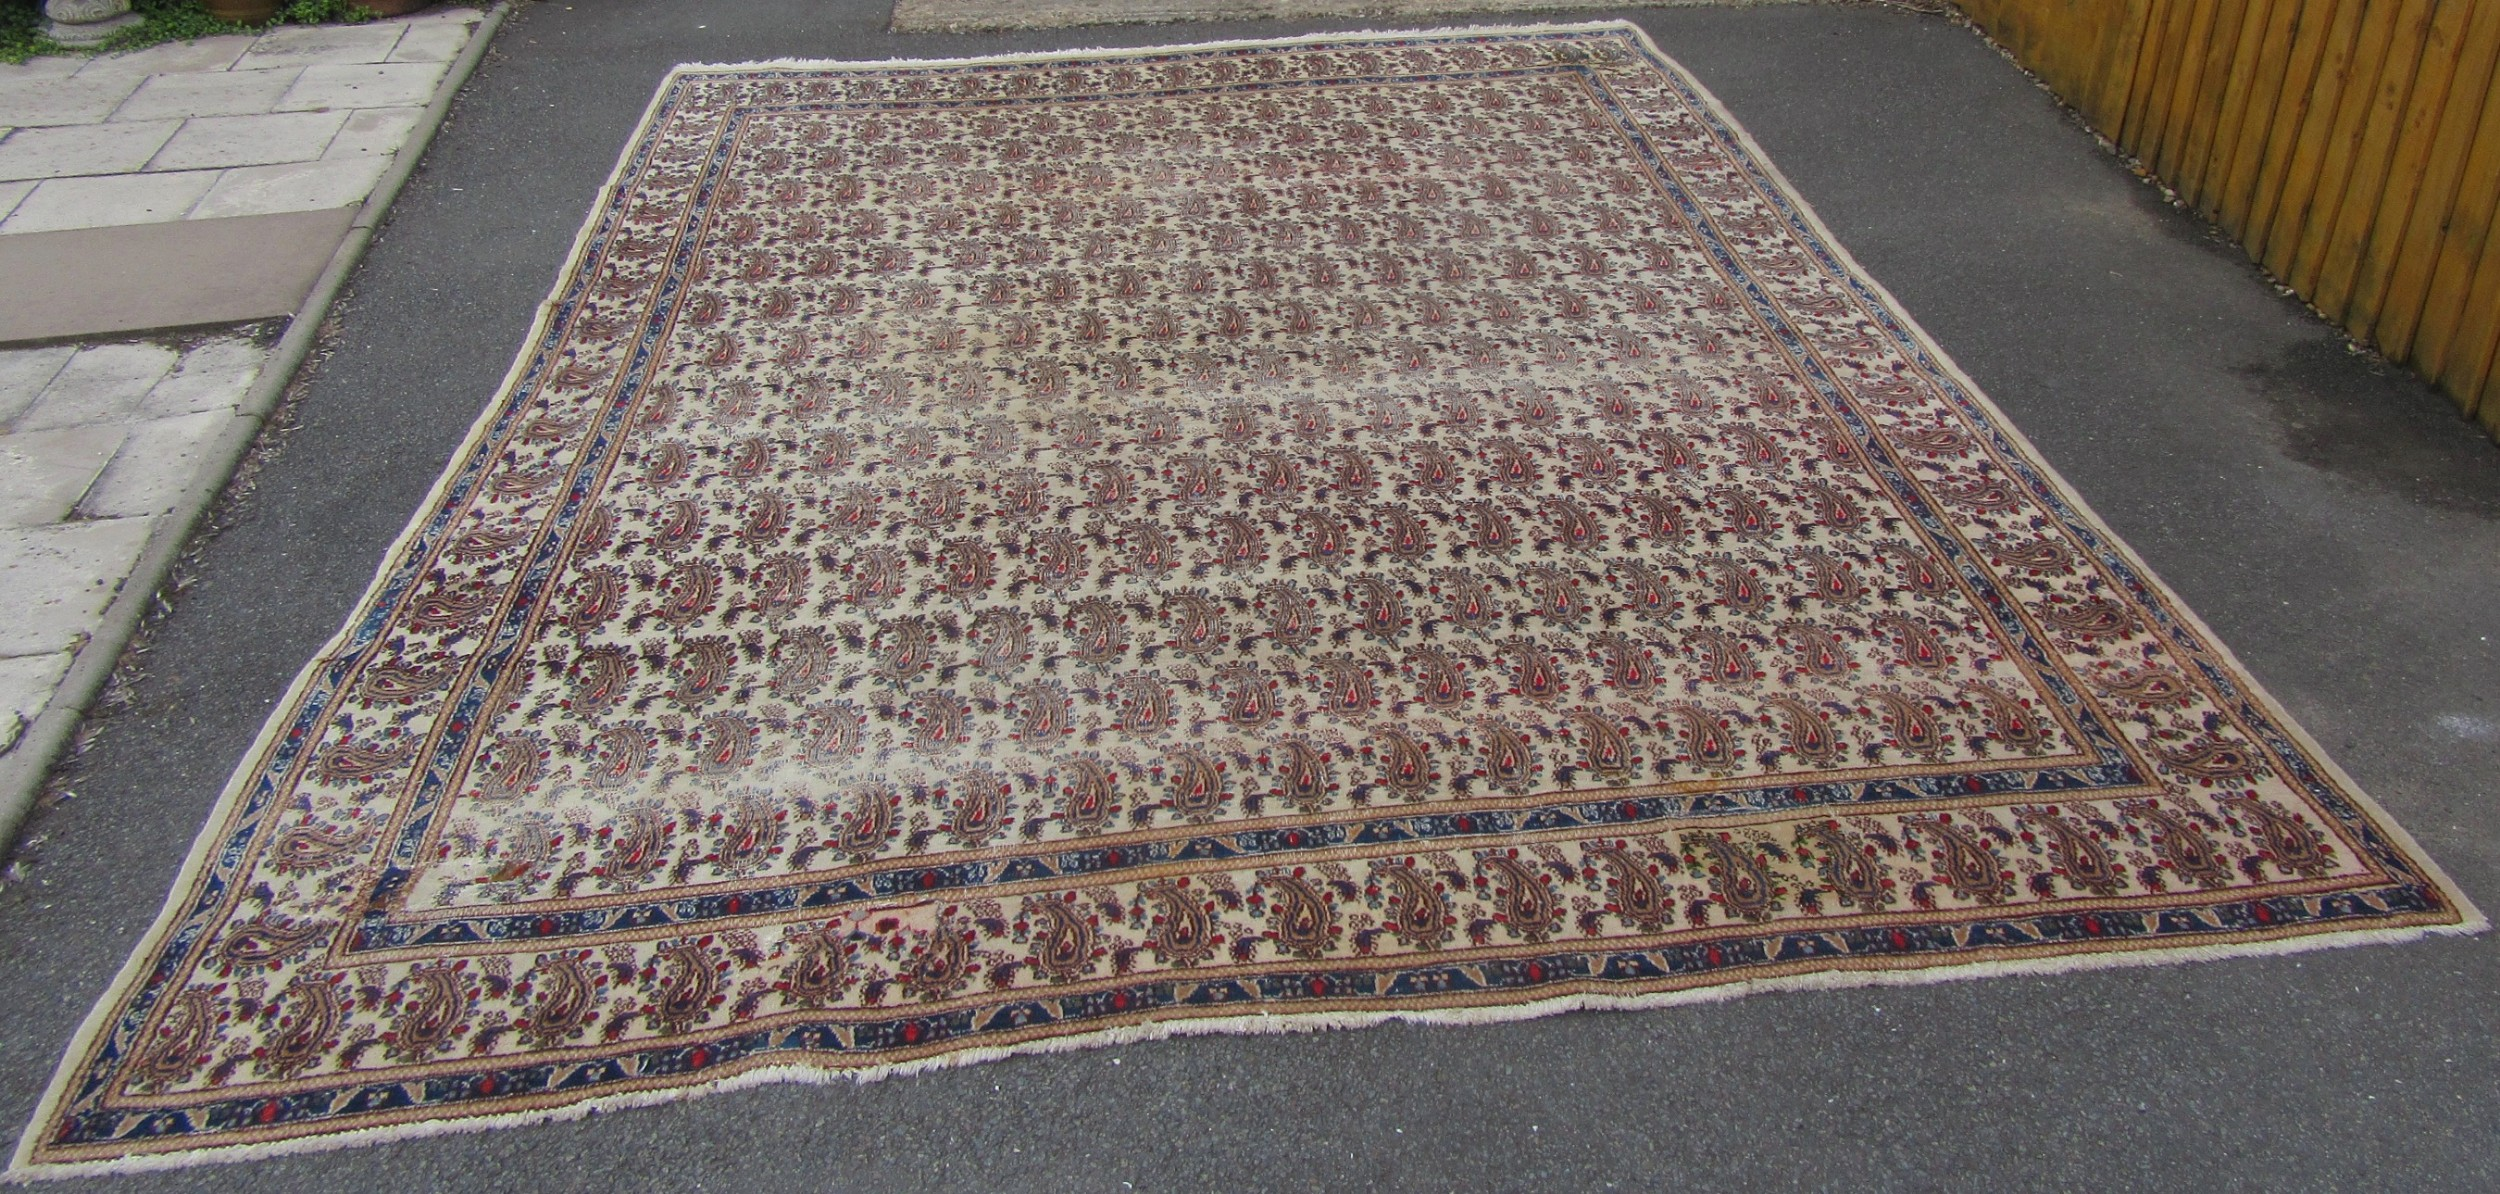 a rare antique country house shabby chic persian mahal ivory ground carpet 12 foot 2 by 9 foot 3 inches